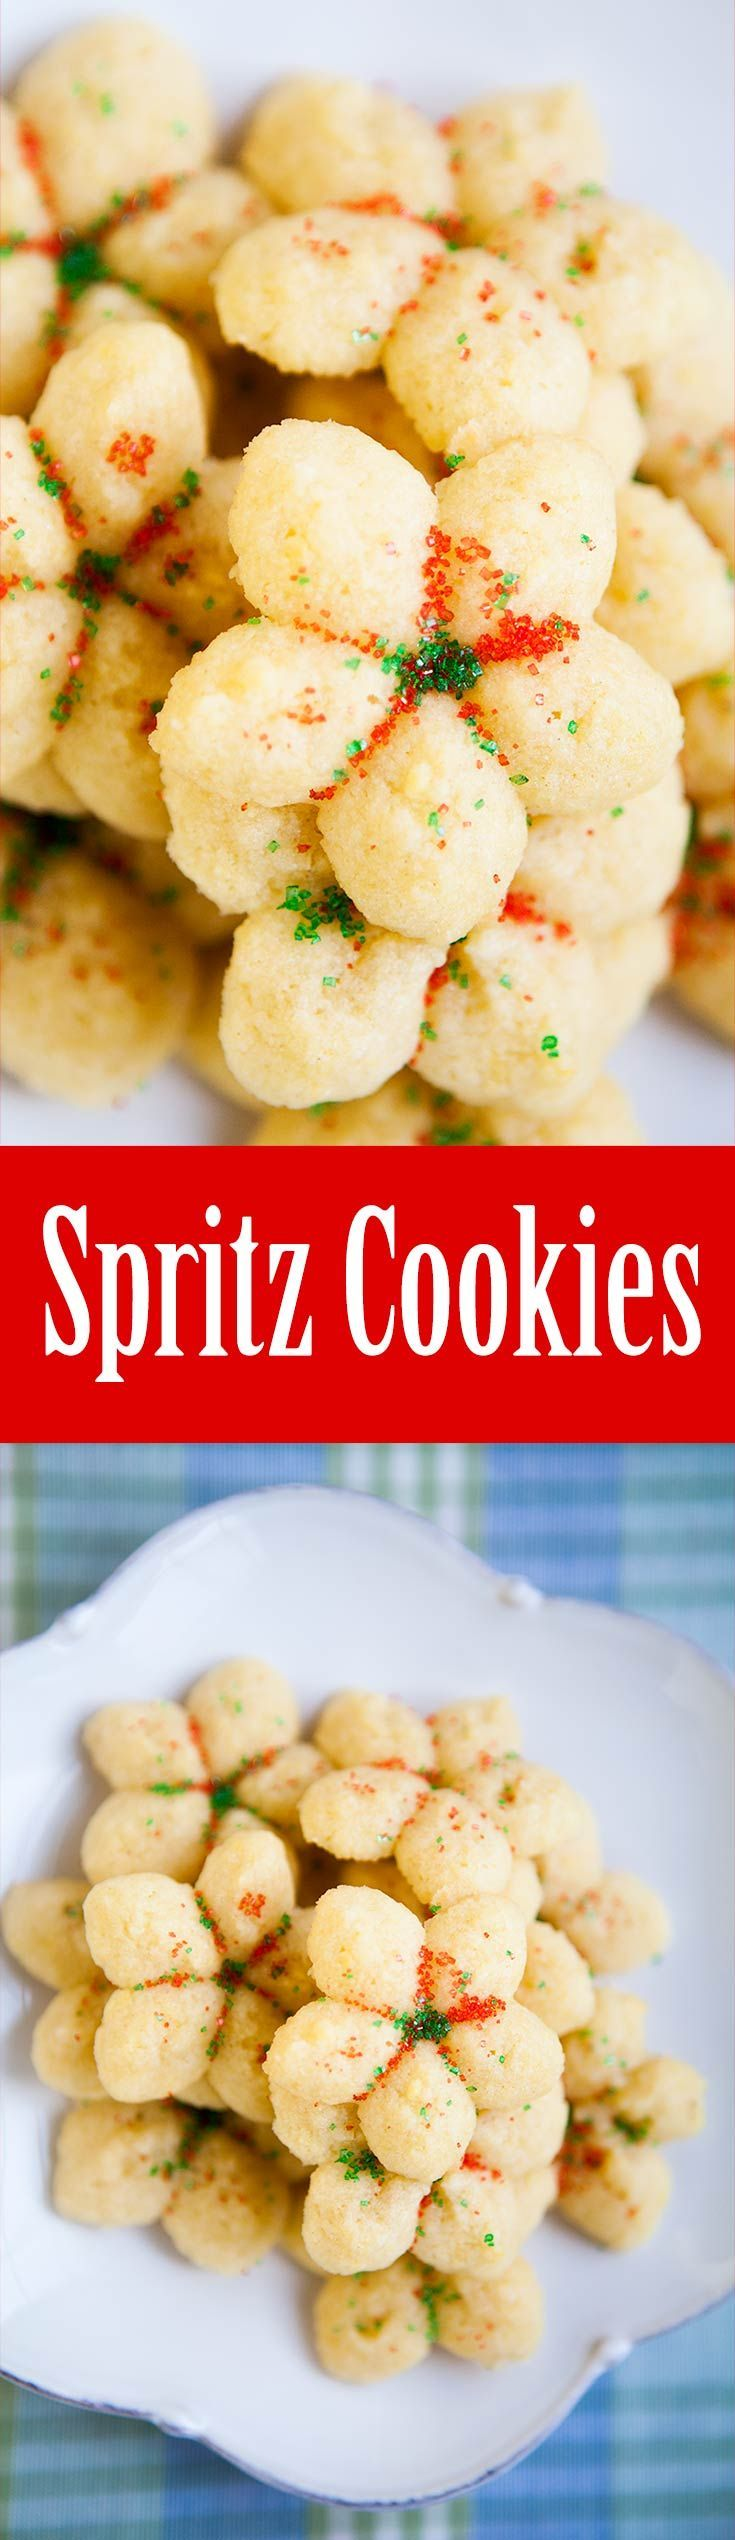 Spritz Cookies ~ A classic Christmas cookie, originated in Germany and Scandinavia. Spritz is a simple butter cookie pressed into festive shapes and topped with all sorts of garnishes. ~ SimplyRecipes.com